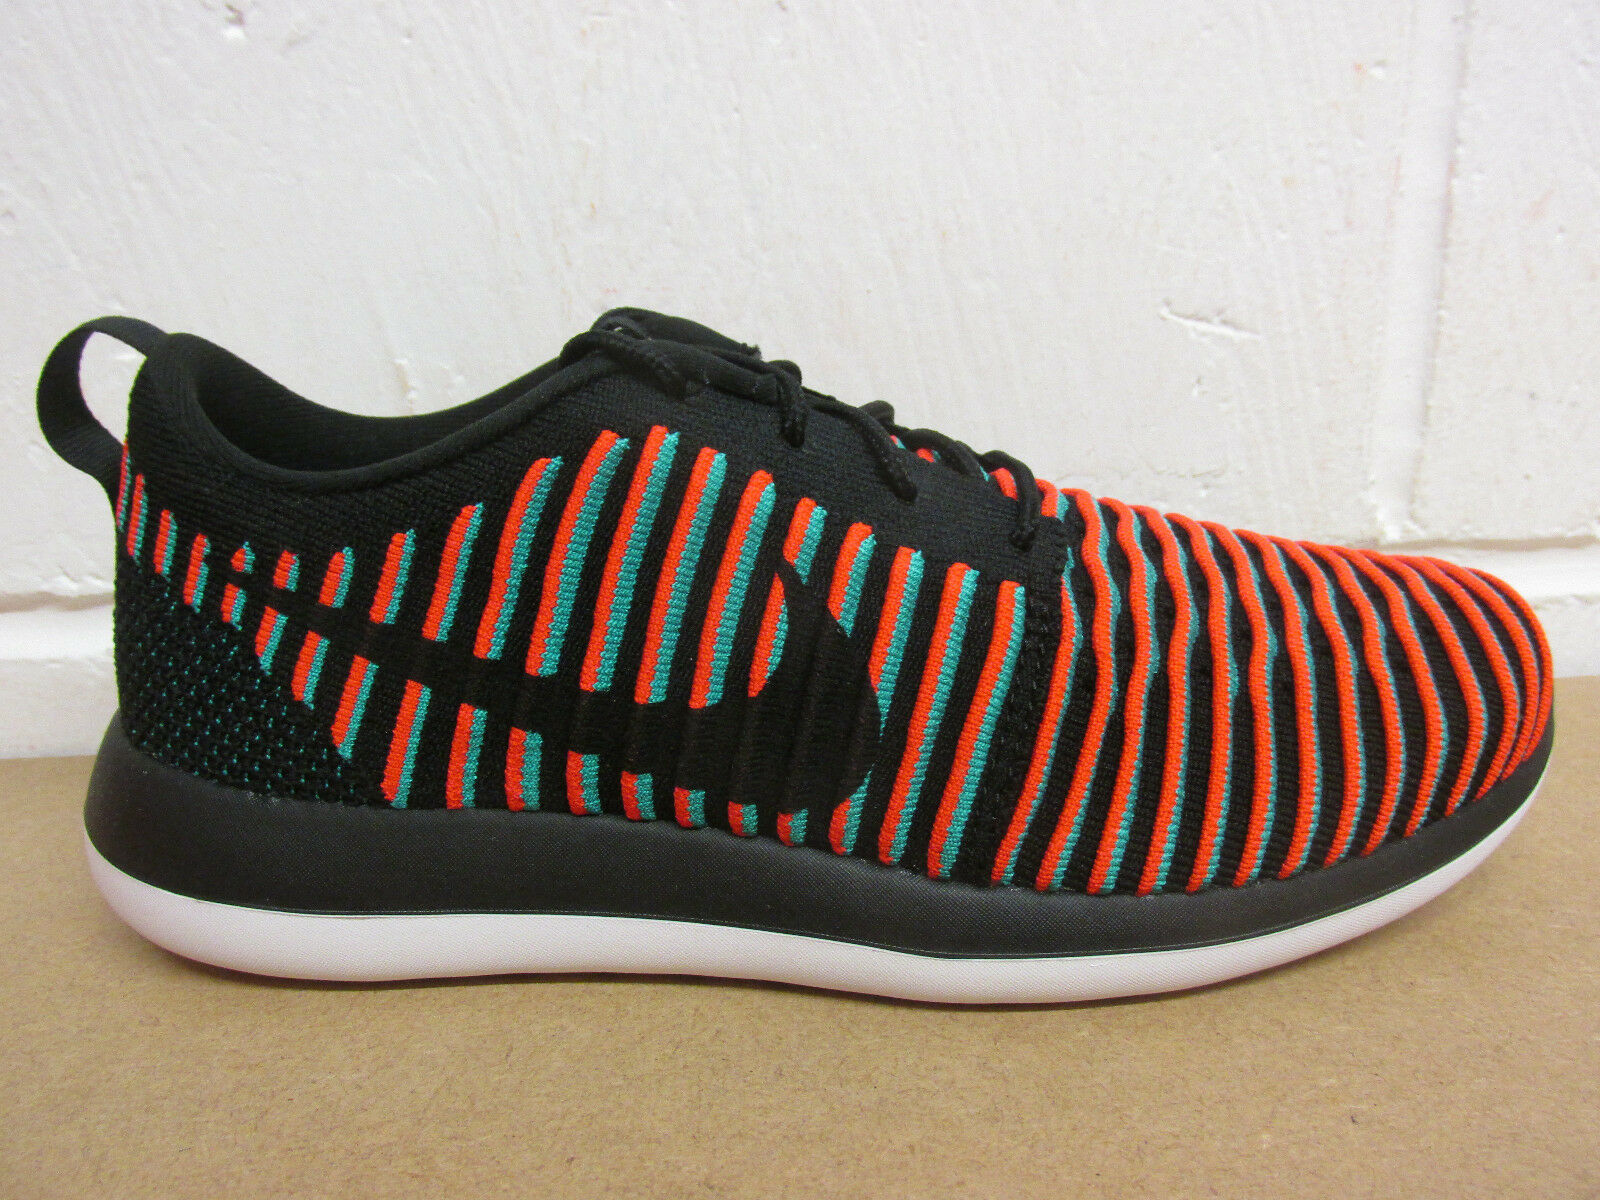 Nike Roshe Two Flyknit Hommes Hommes Hommes Running Trainers 844833 003 Baskets Chaussures 1a3e52